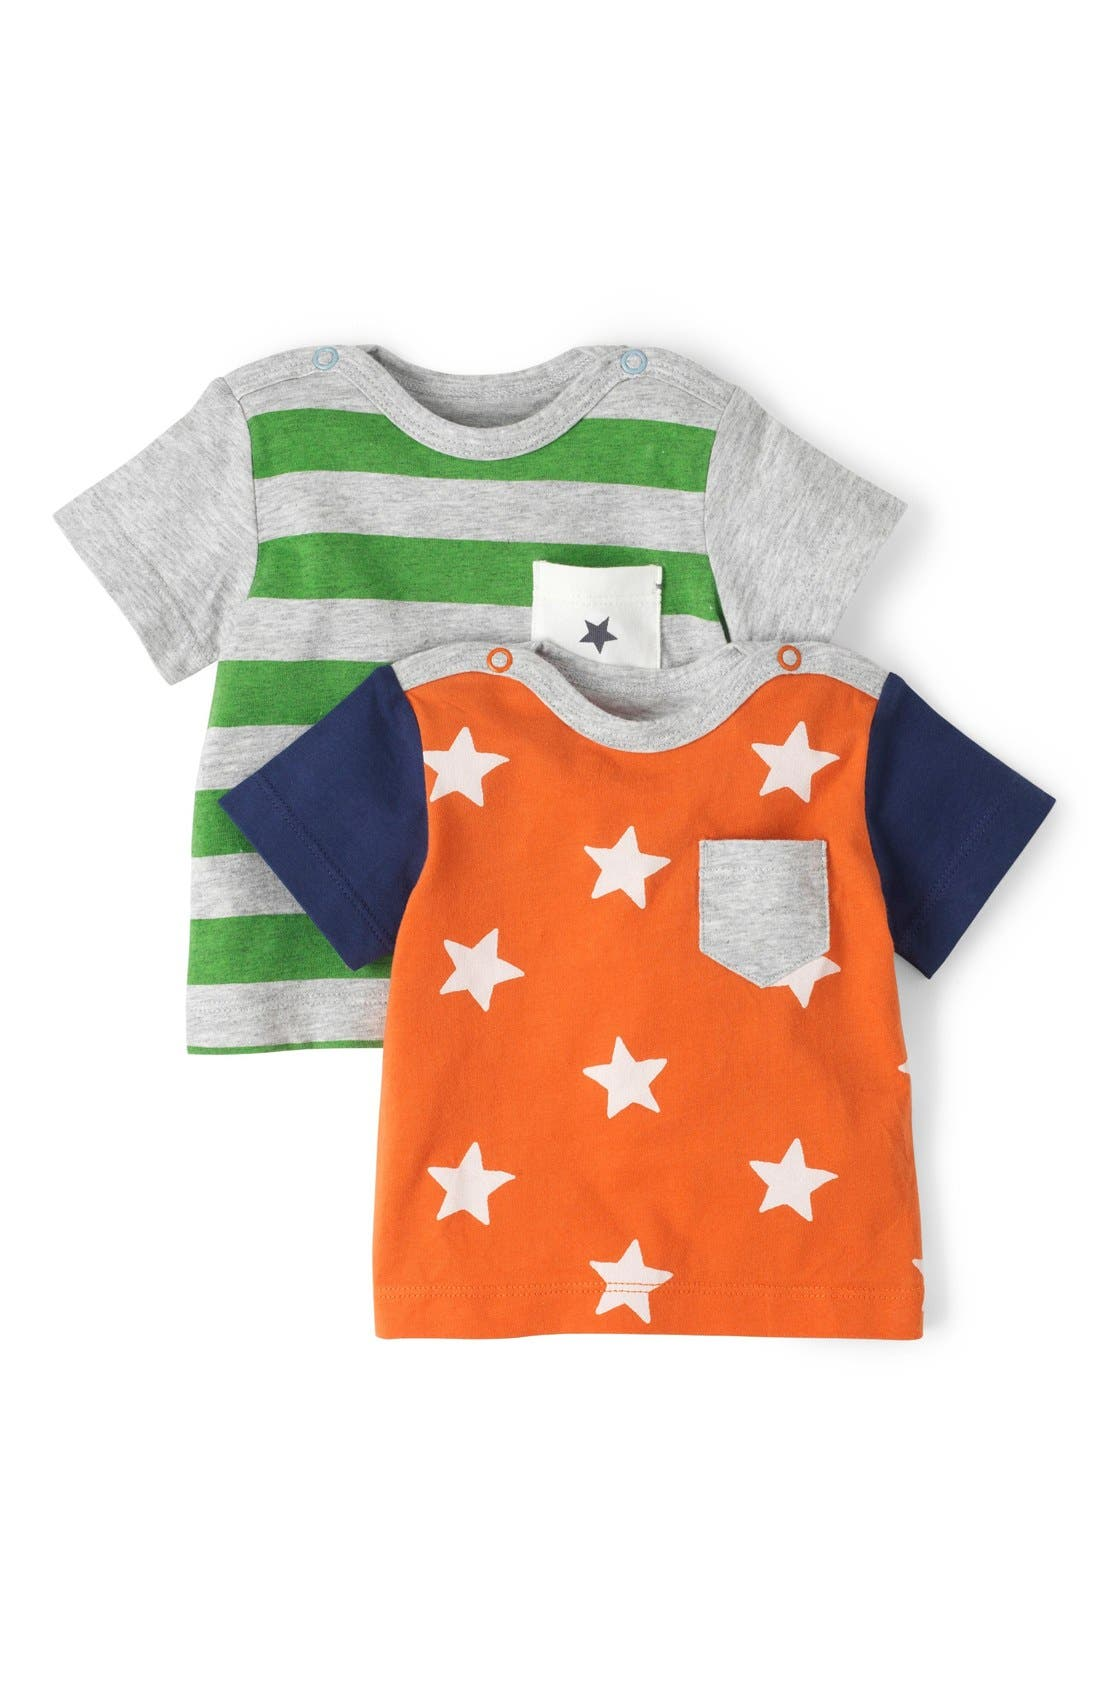 Alternate Image 1 Selected - Mini Boden 'Hotchpotch' Chest Pocket T-Shirts (Set of 2) (Baby Boys)